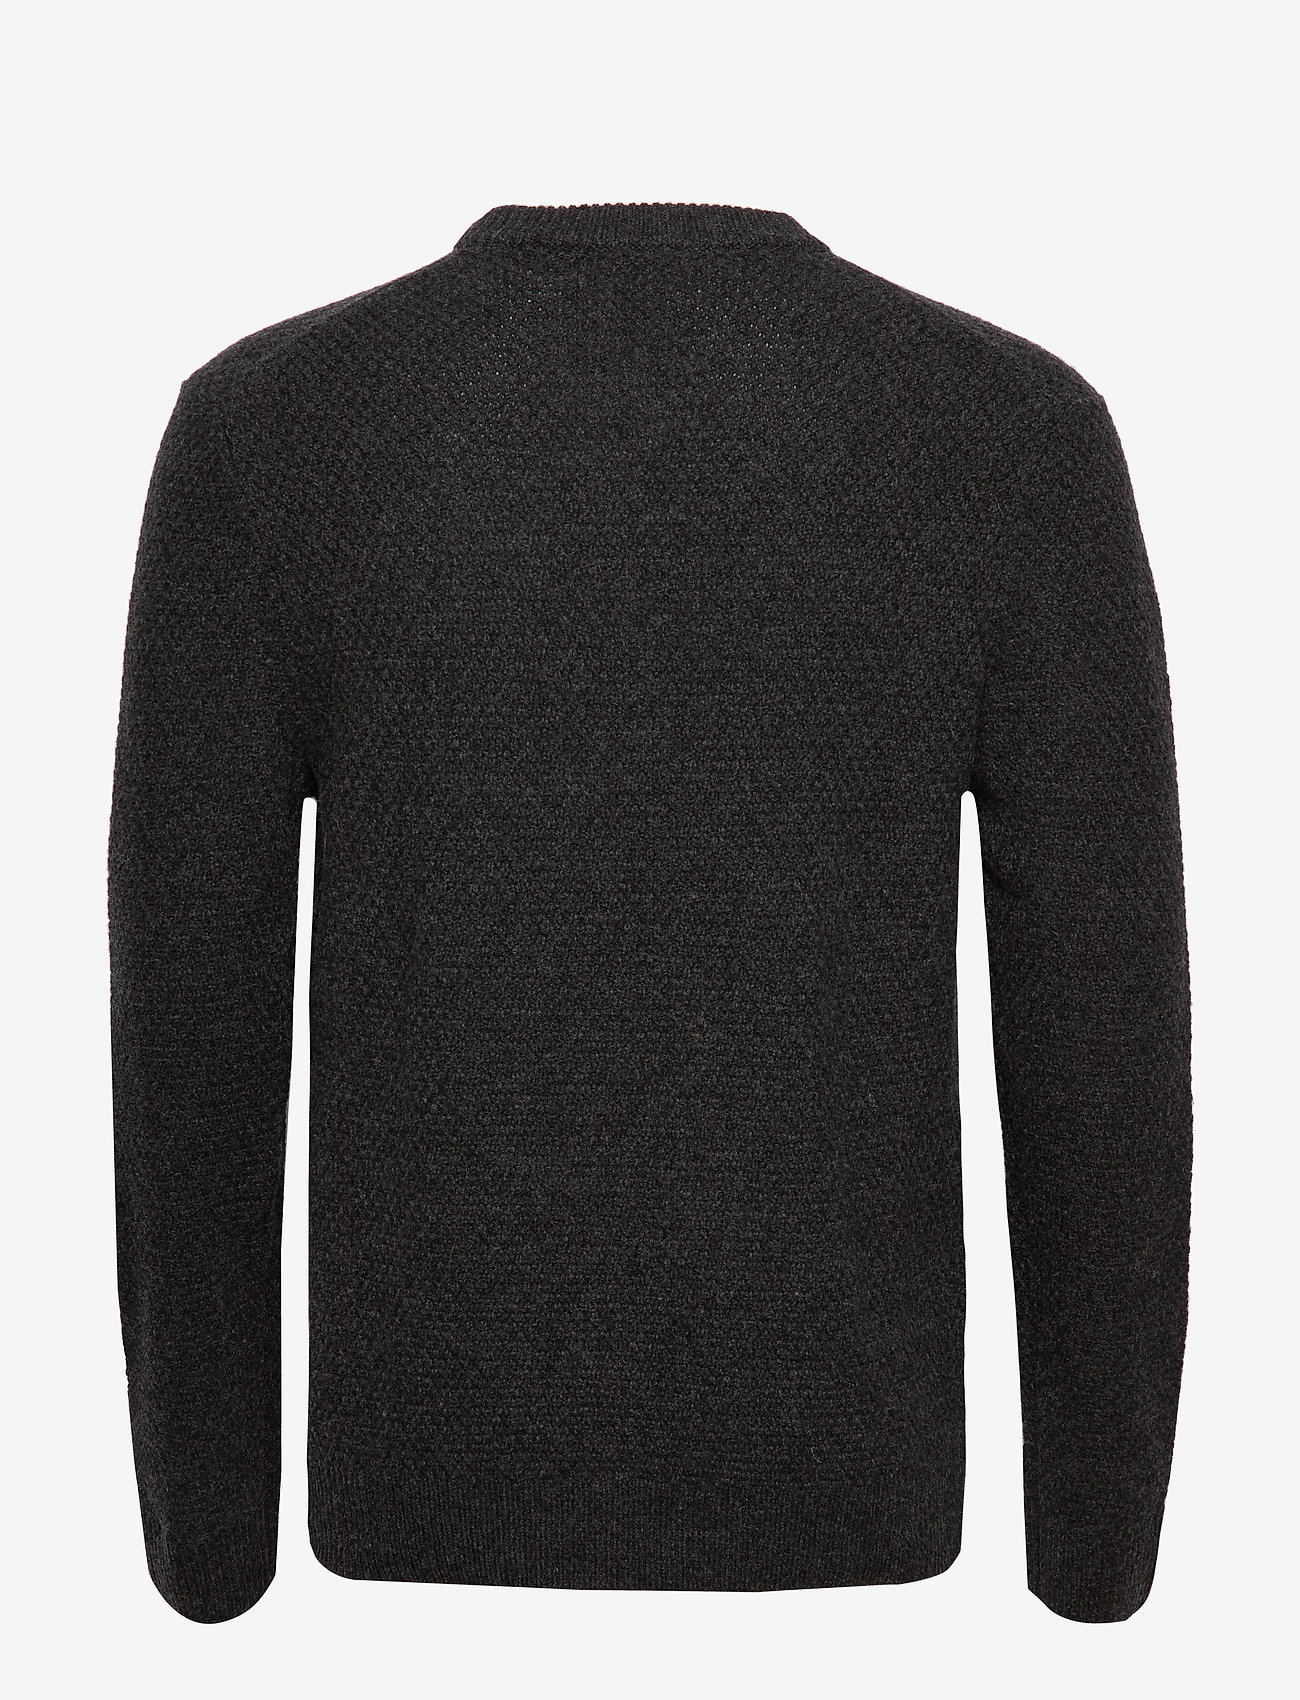 Filippa K - M. Tobias Sweater - basic strik - dark grey - 1